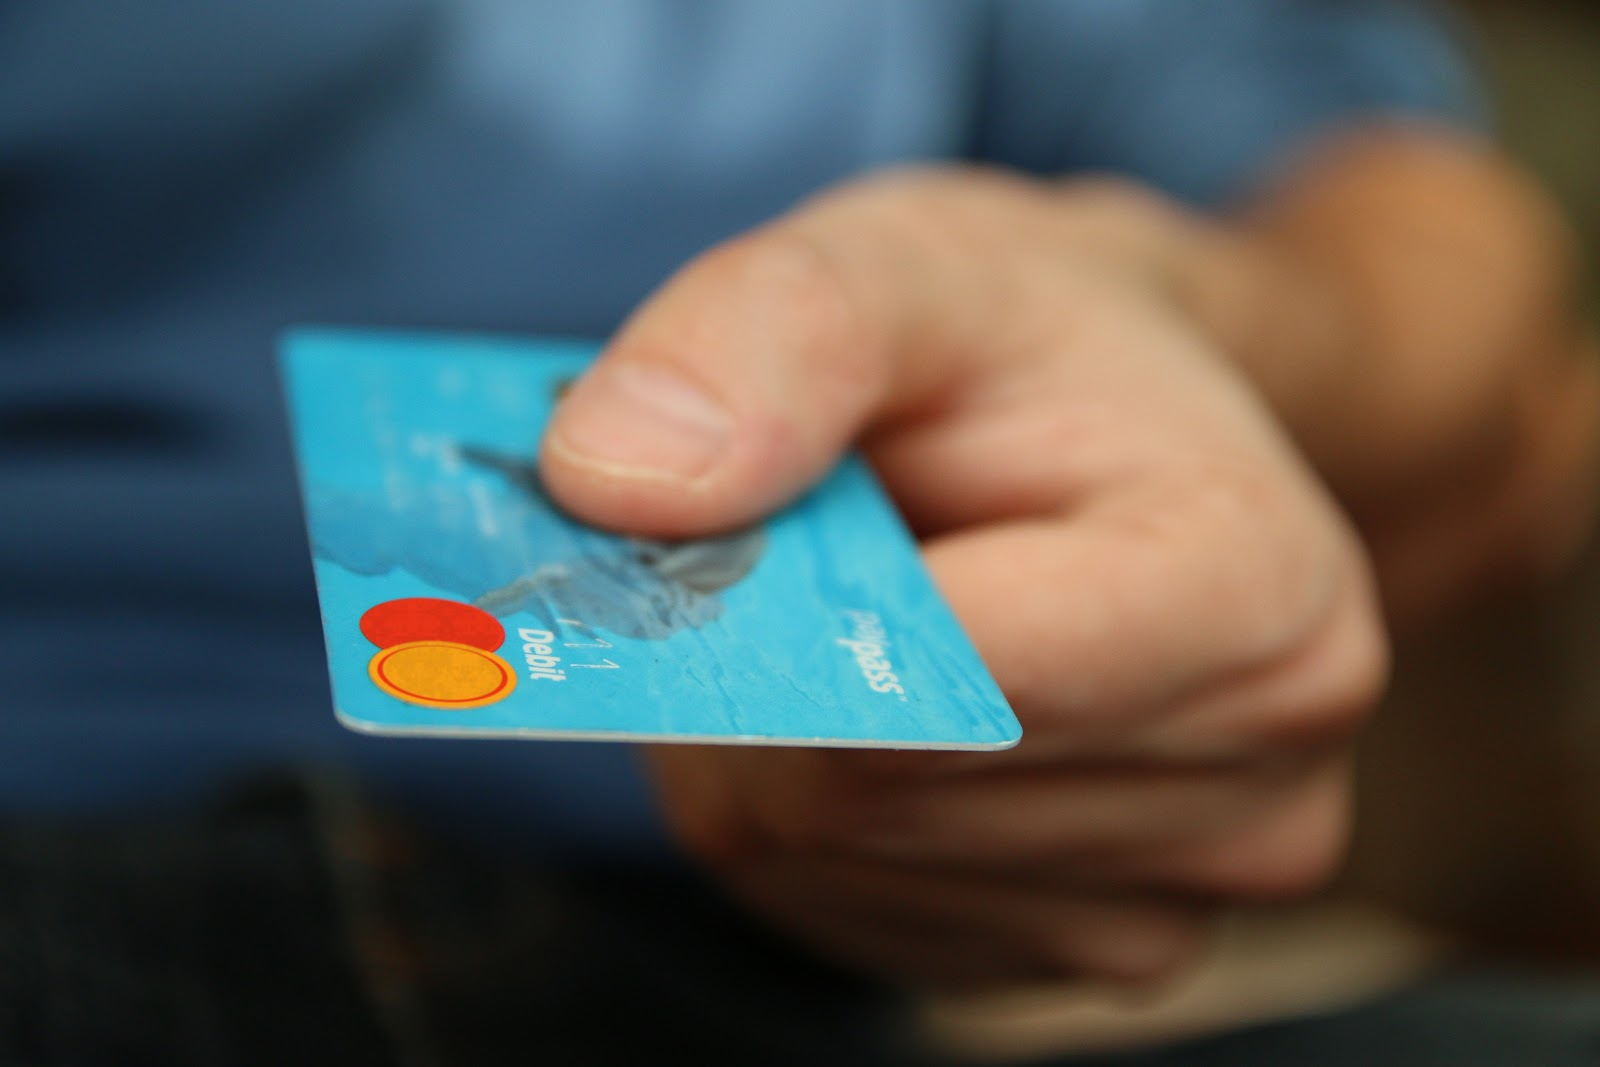 Pay by card - Image credit: pixabay.com